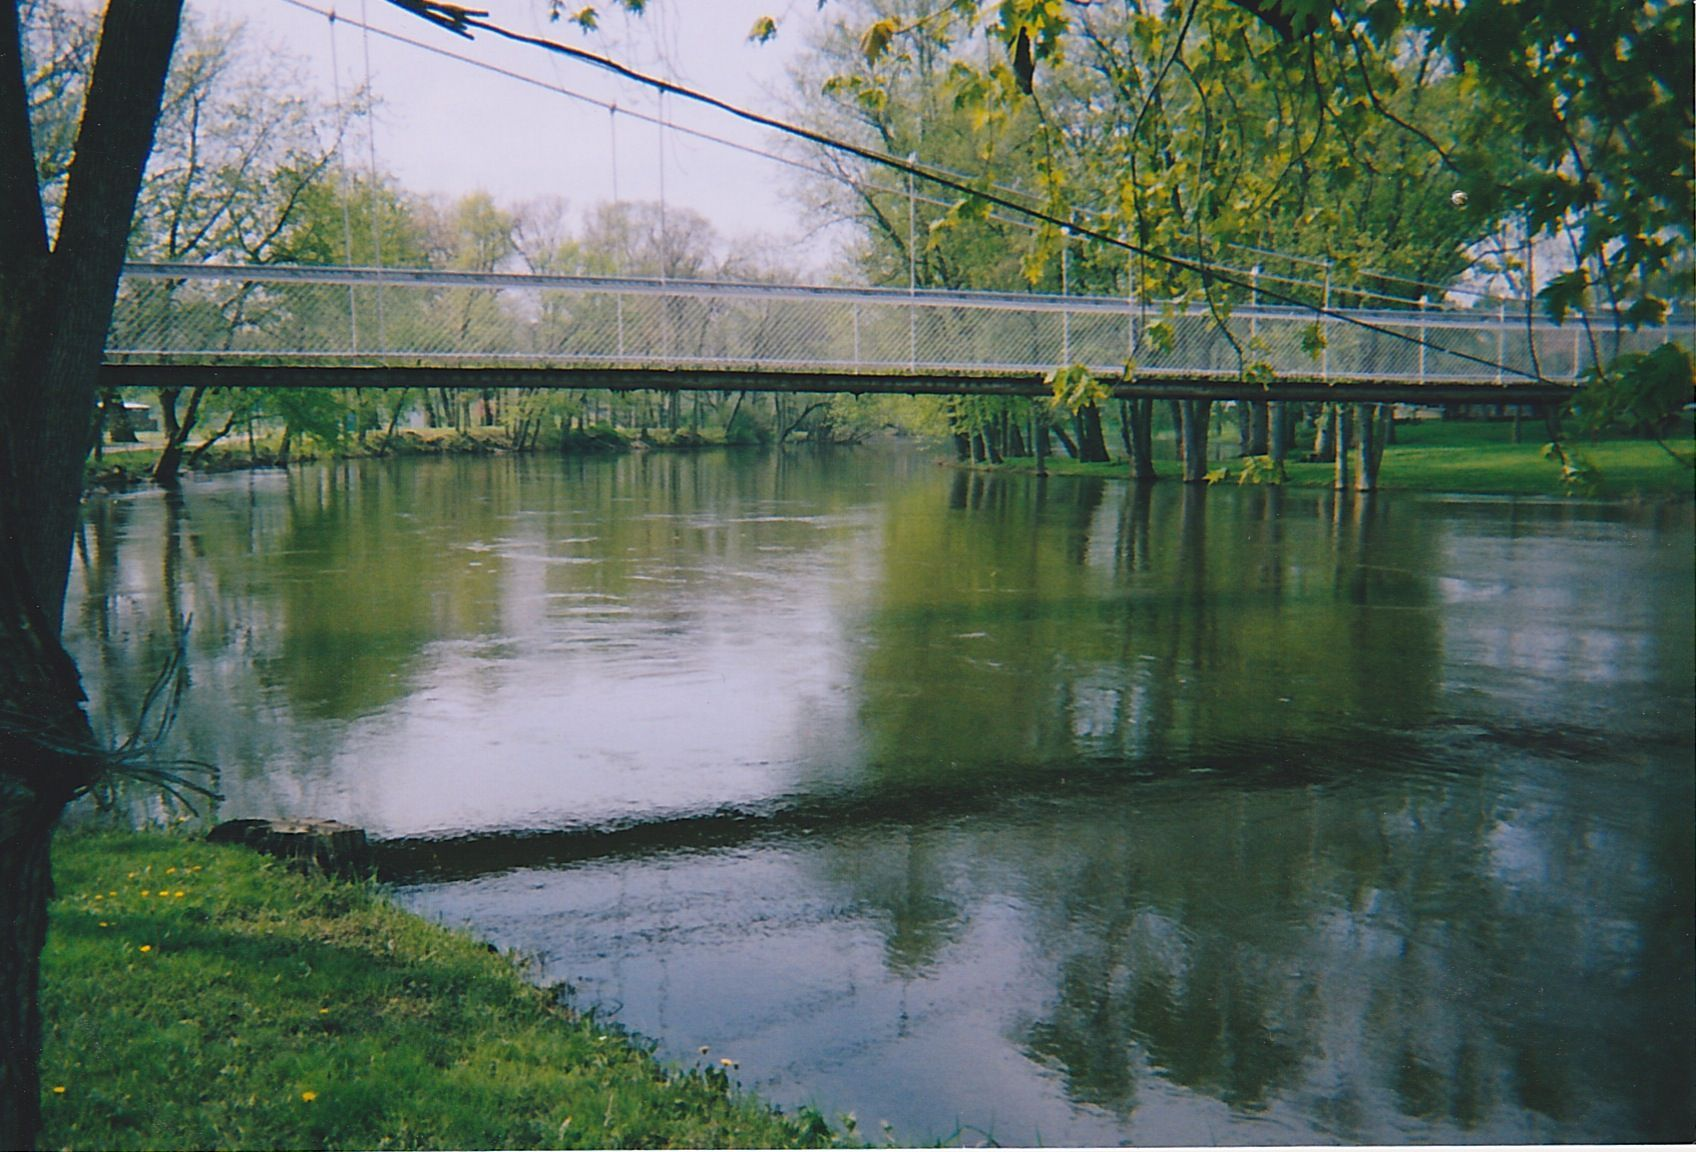 Coma reccomend Swinging bridge winamac